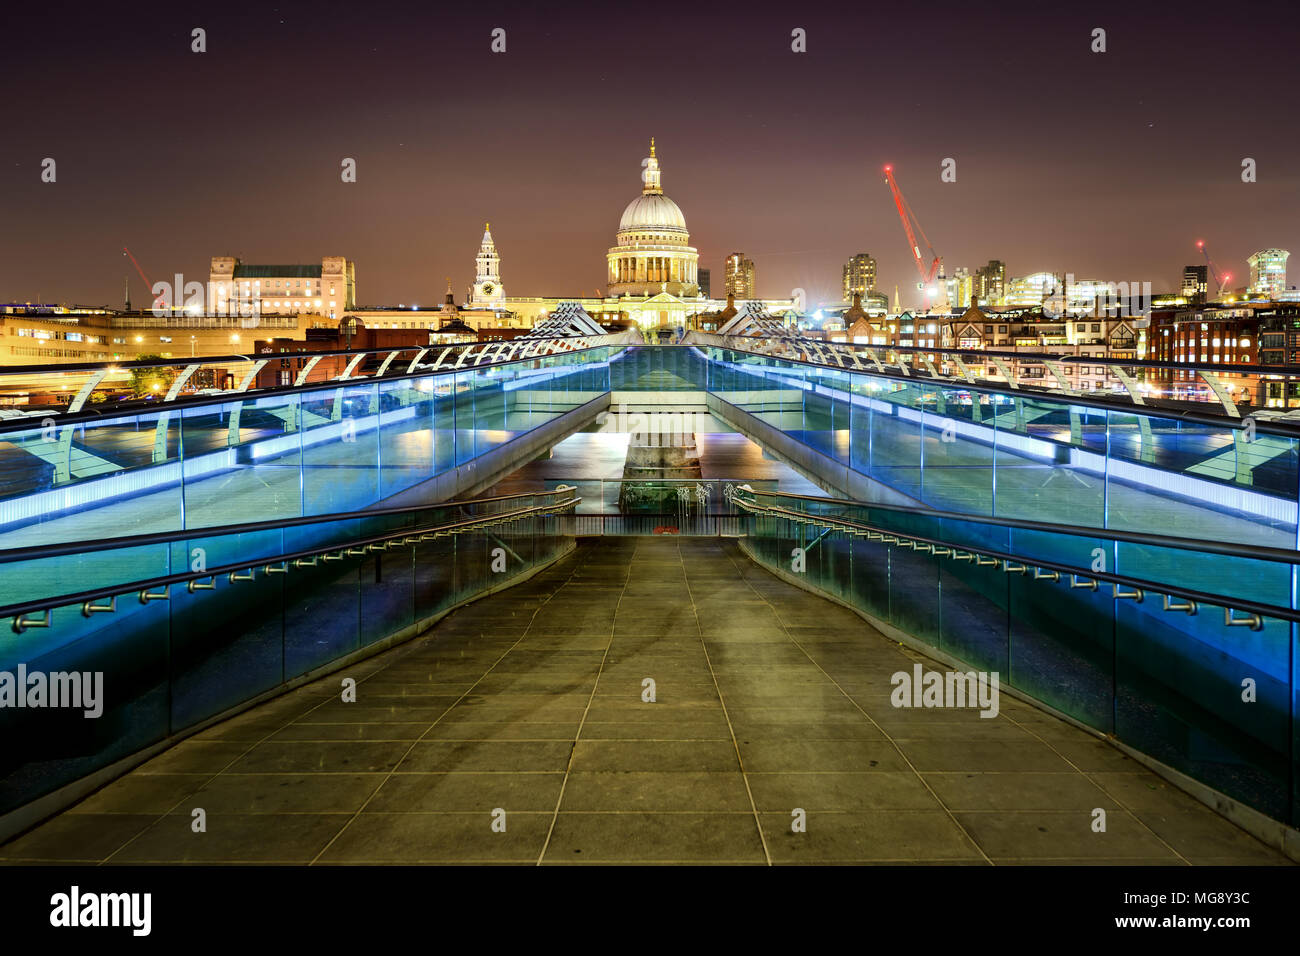 St Paul's Cathedral during night from the Millennium bridge over river Thames, London, United Kingdom. Stock Photo